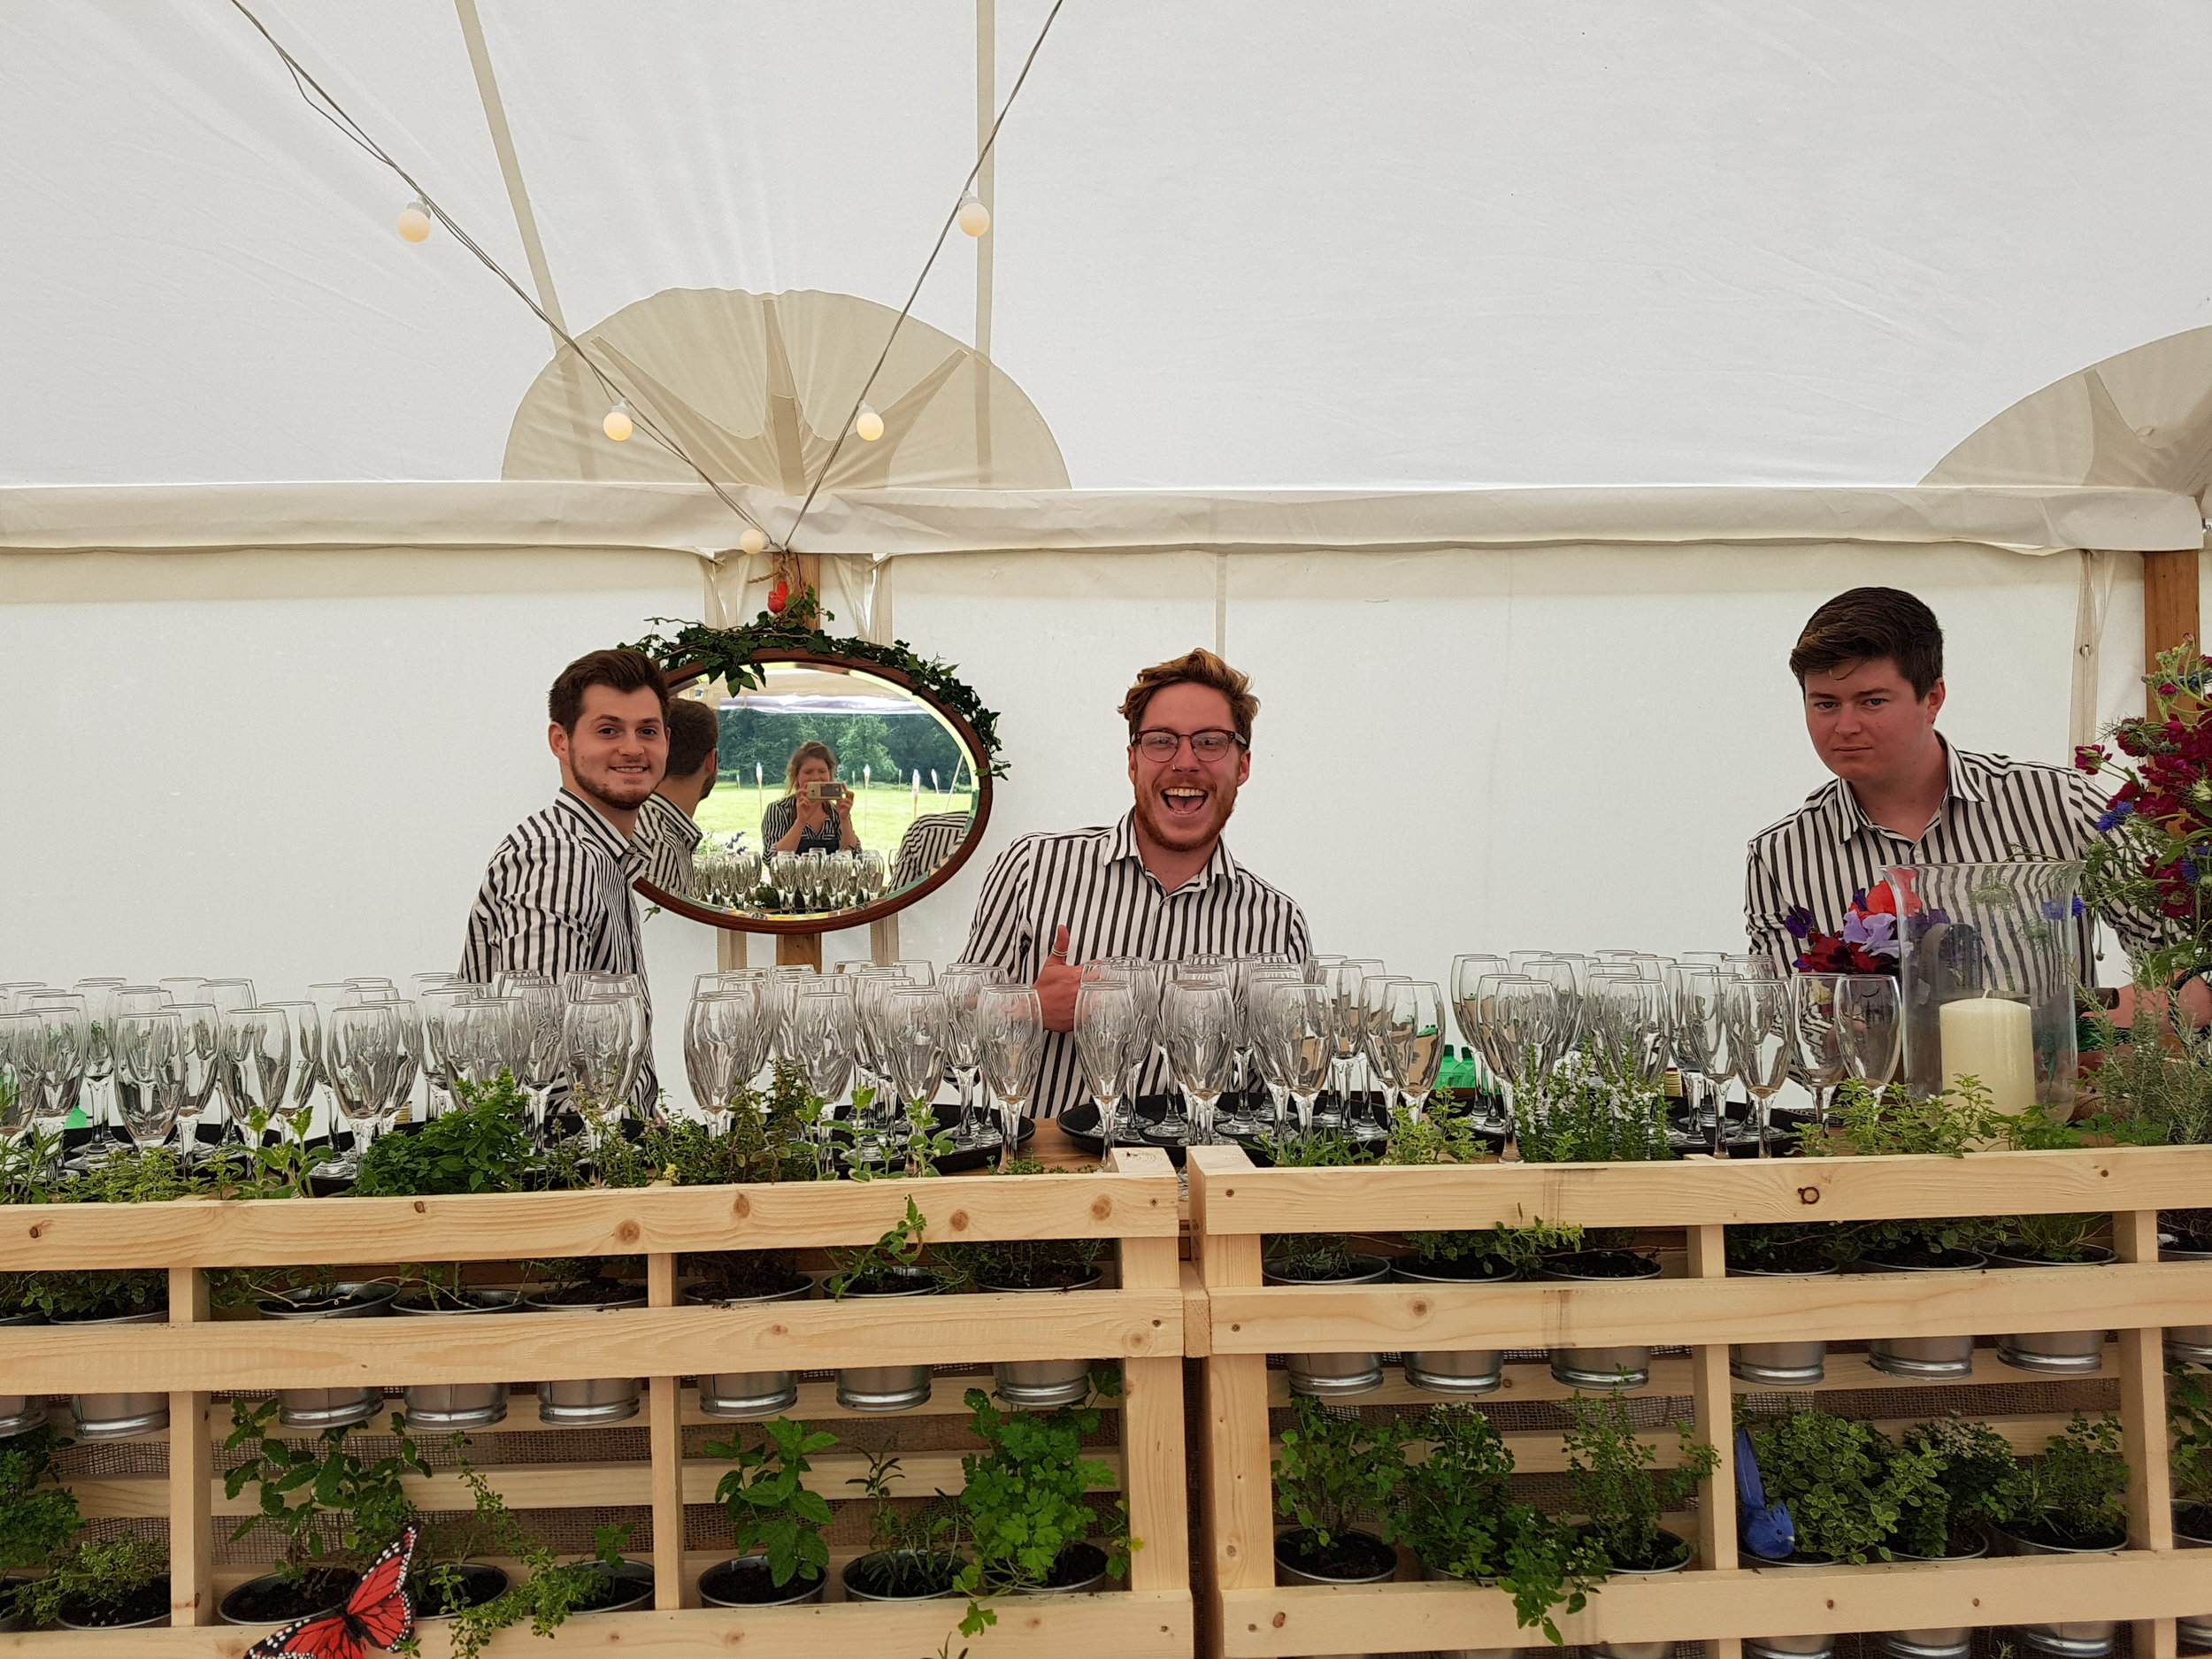 Bar Manager Jonno and his team getting ready for a champagne reception on Dartmoor.